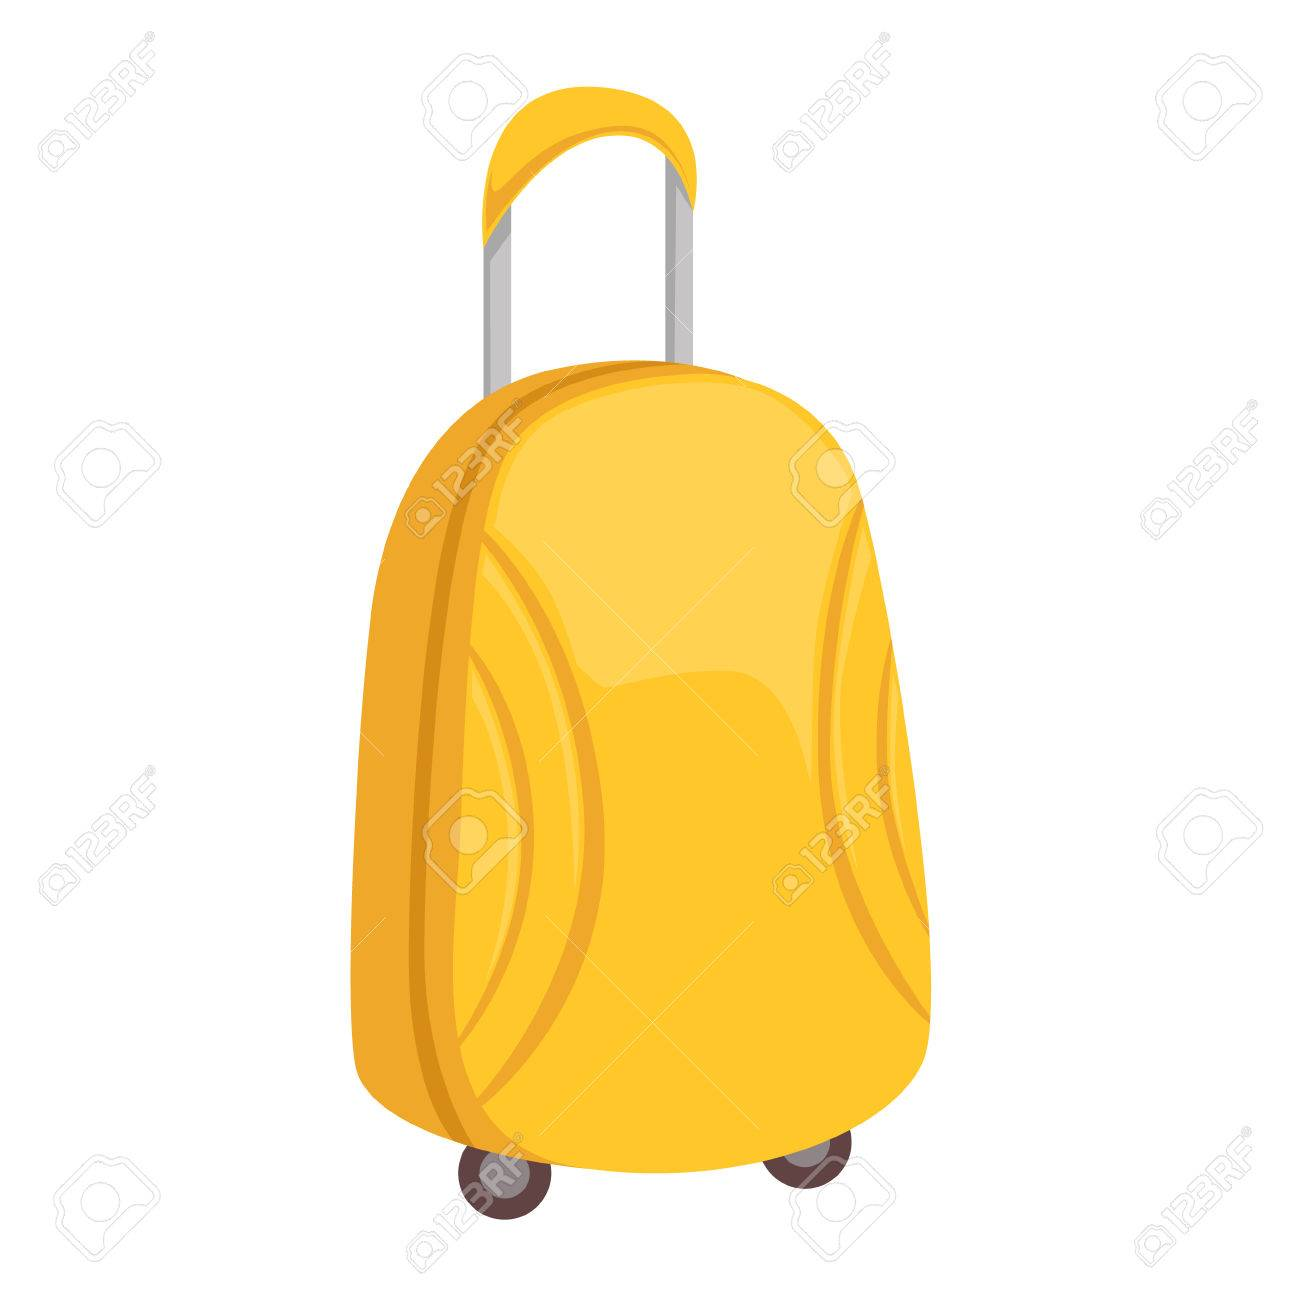 3e31838fa907 Stylish Yellow Suitcase On Wheels With Telescopic Handle Item..